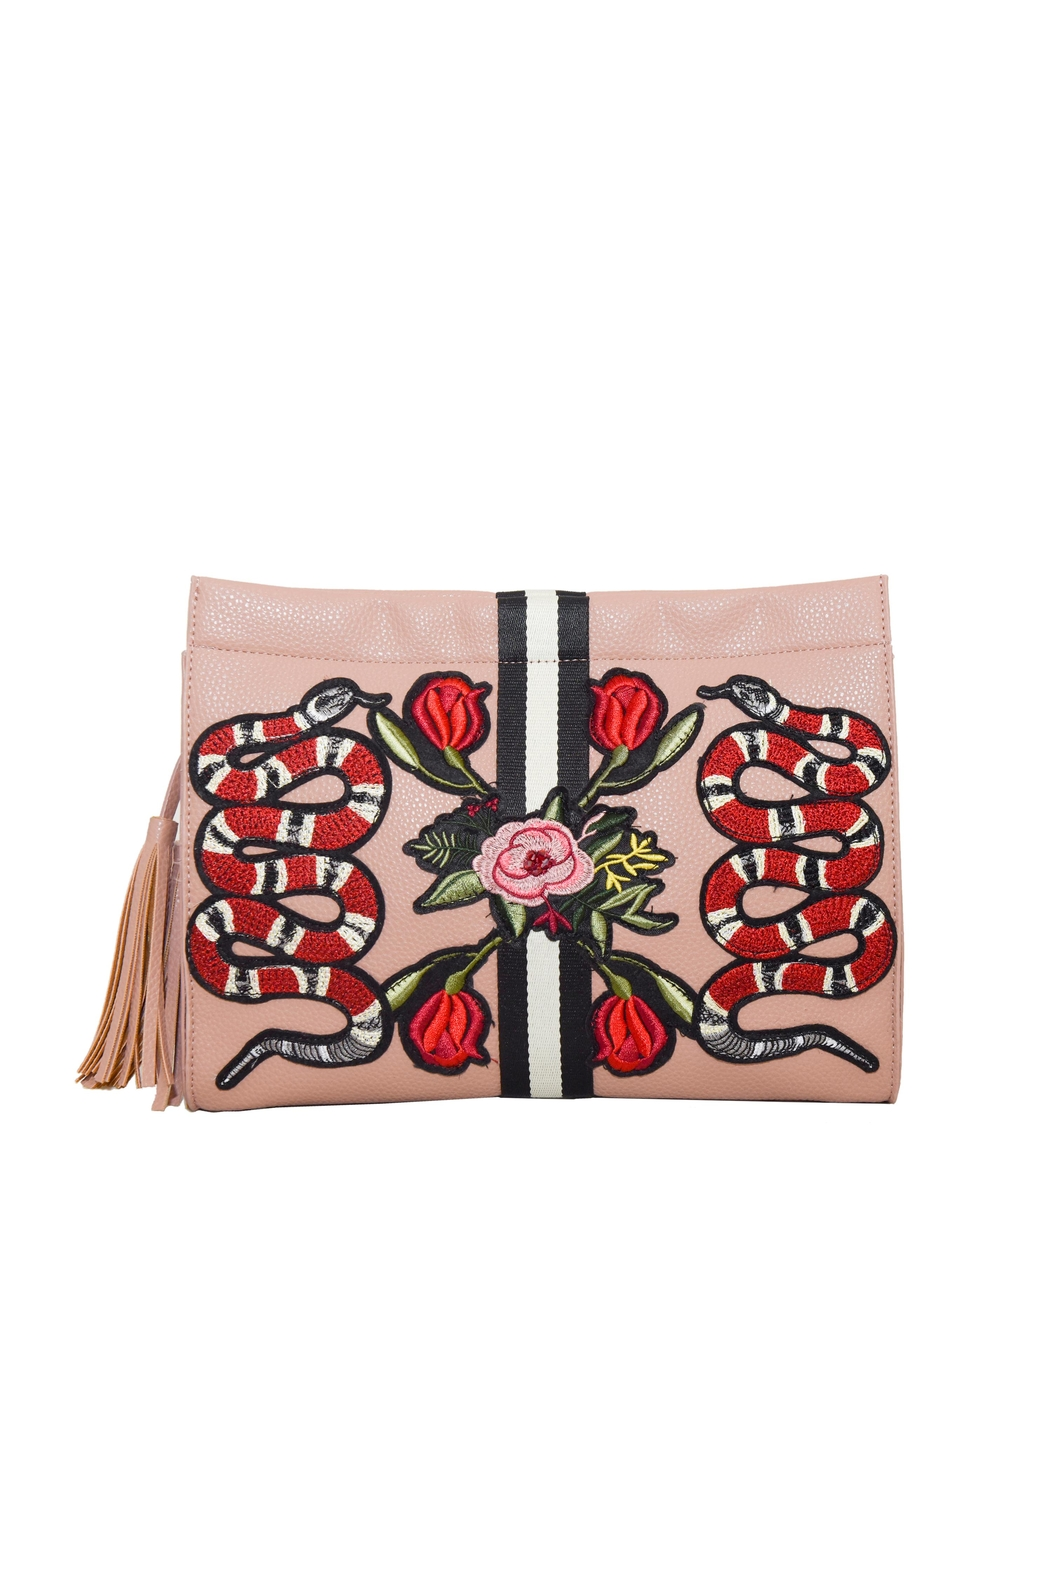 INZI Snakes N Roses Clutch - Main Image